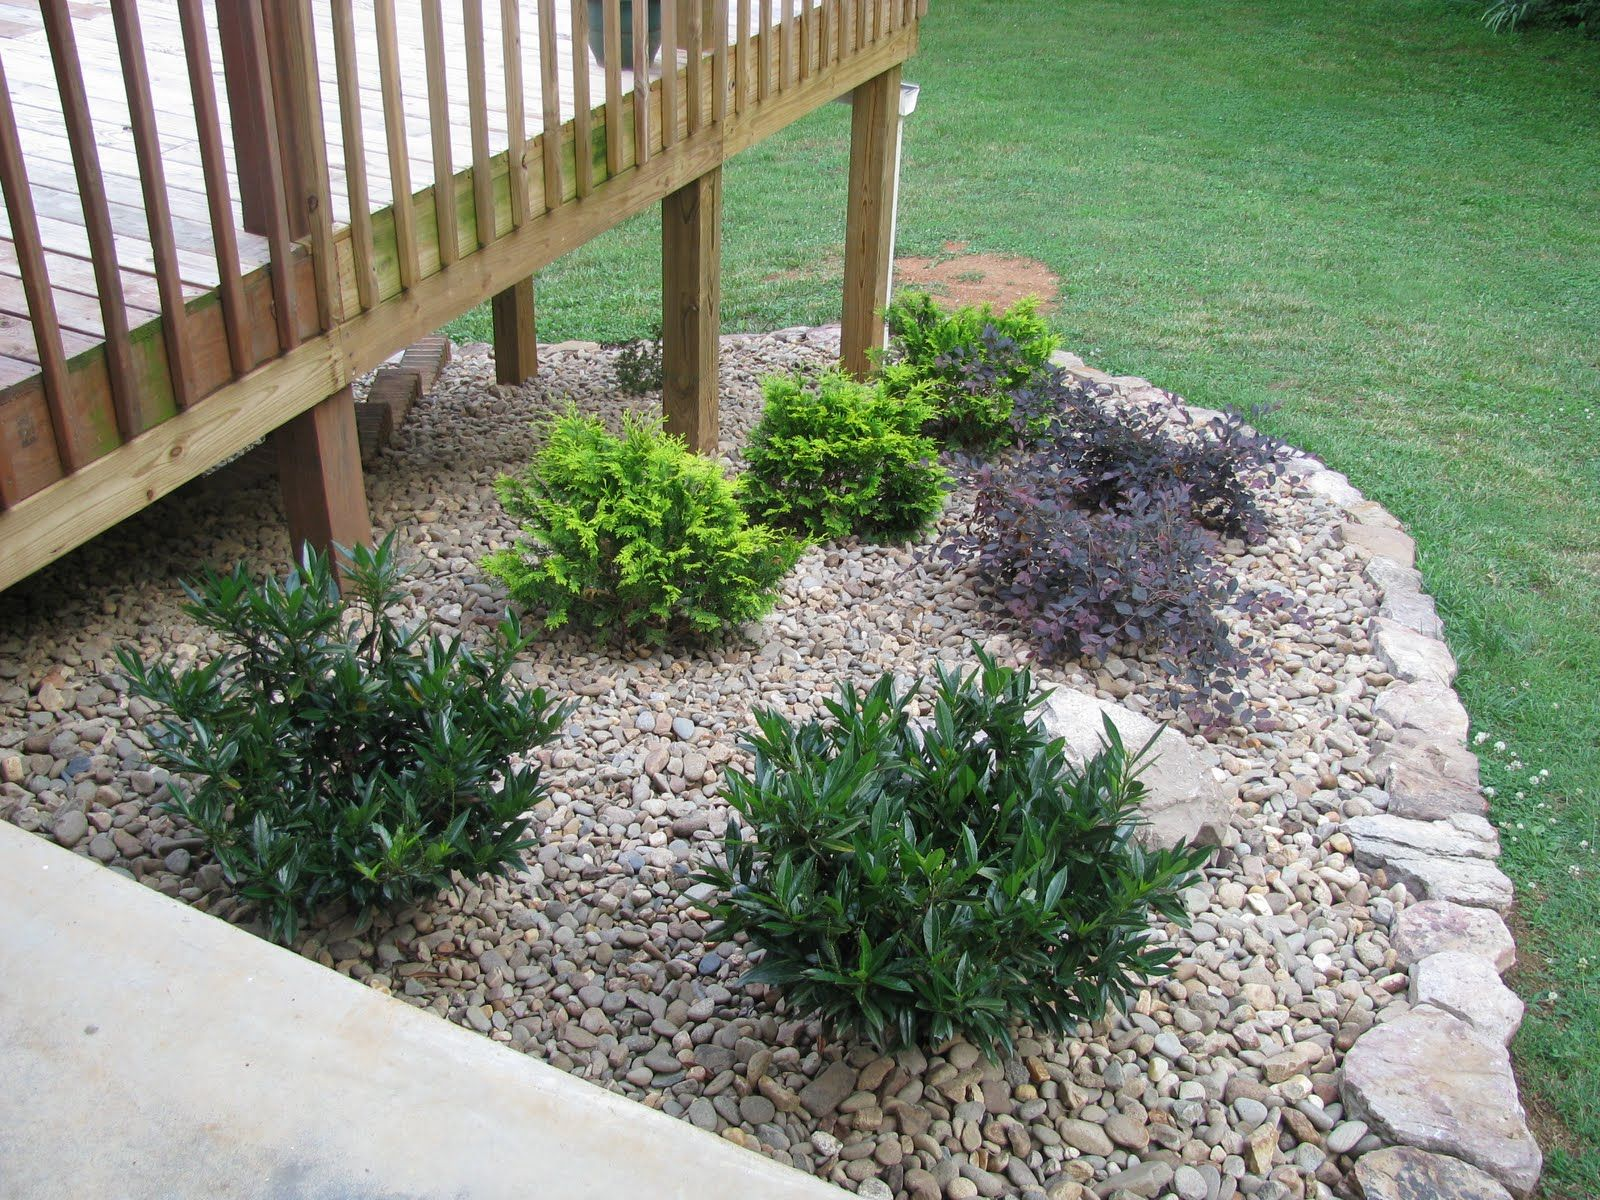 Landscaping around a deck lightsonthelake rock garden for Landscaping ideas around house